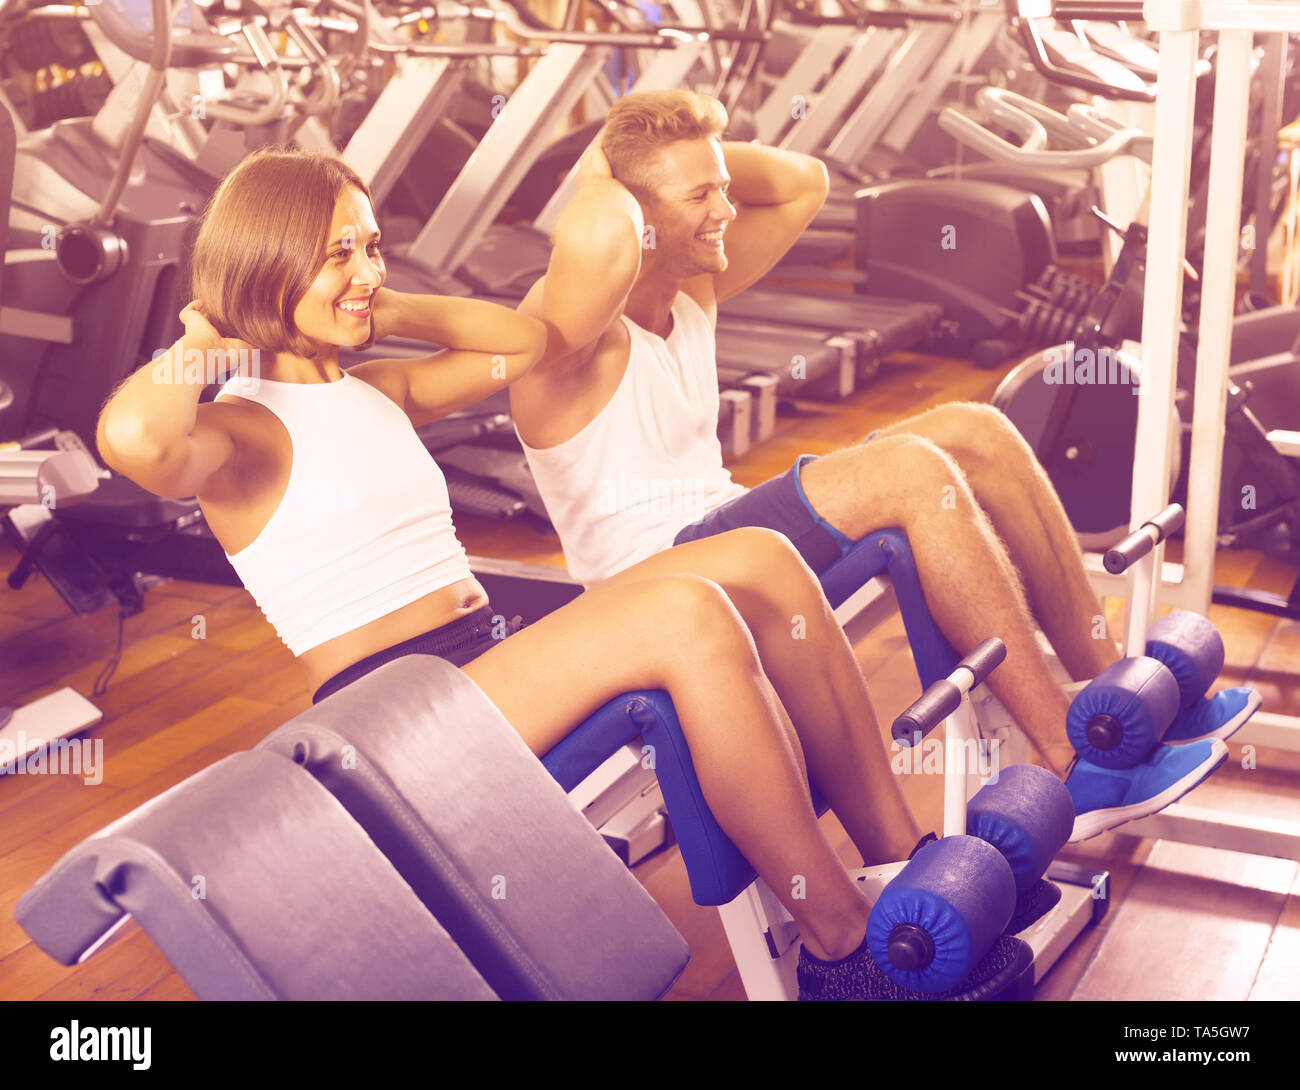 cheerful spanish man and woman making sit ups together using machine in gym - Stock Image